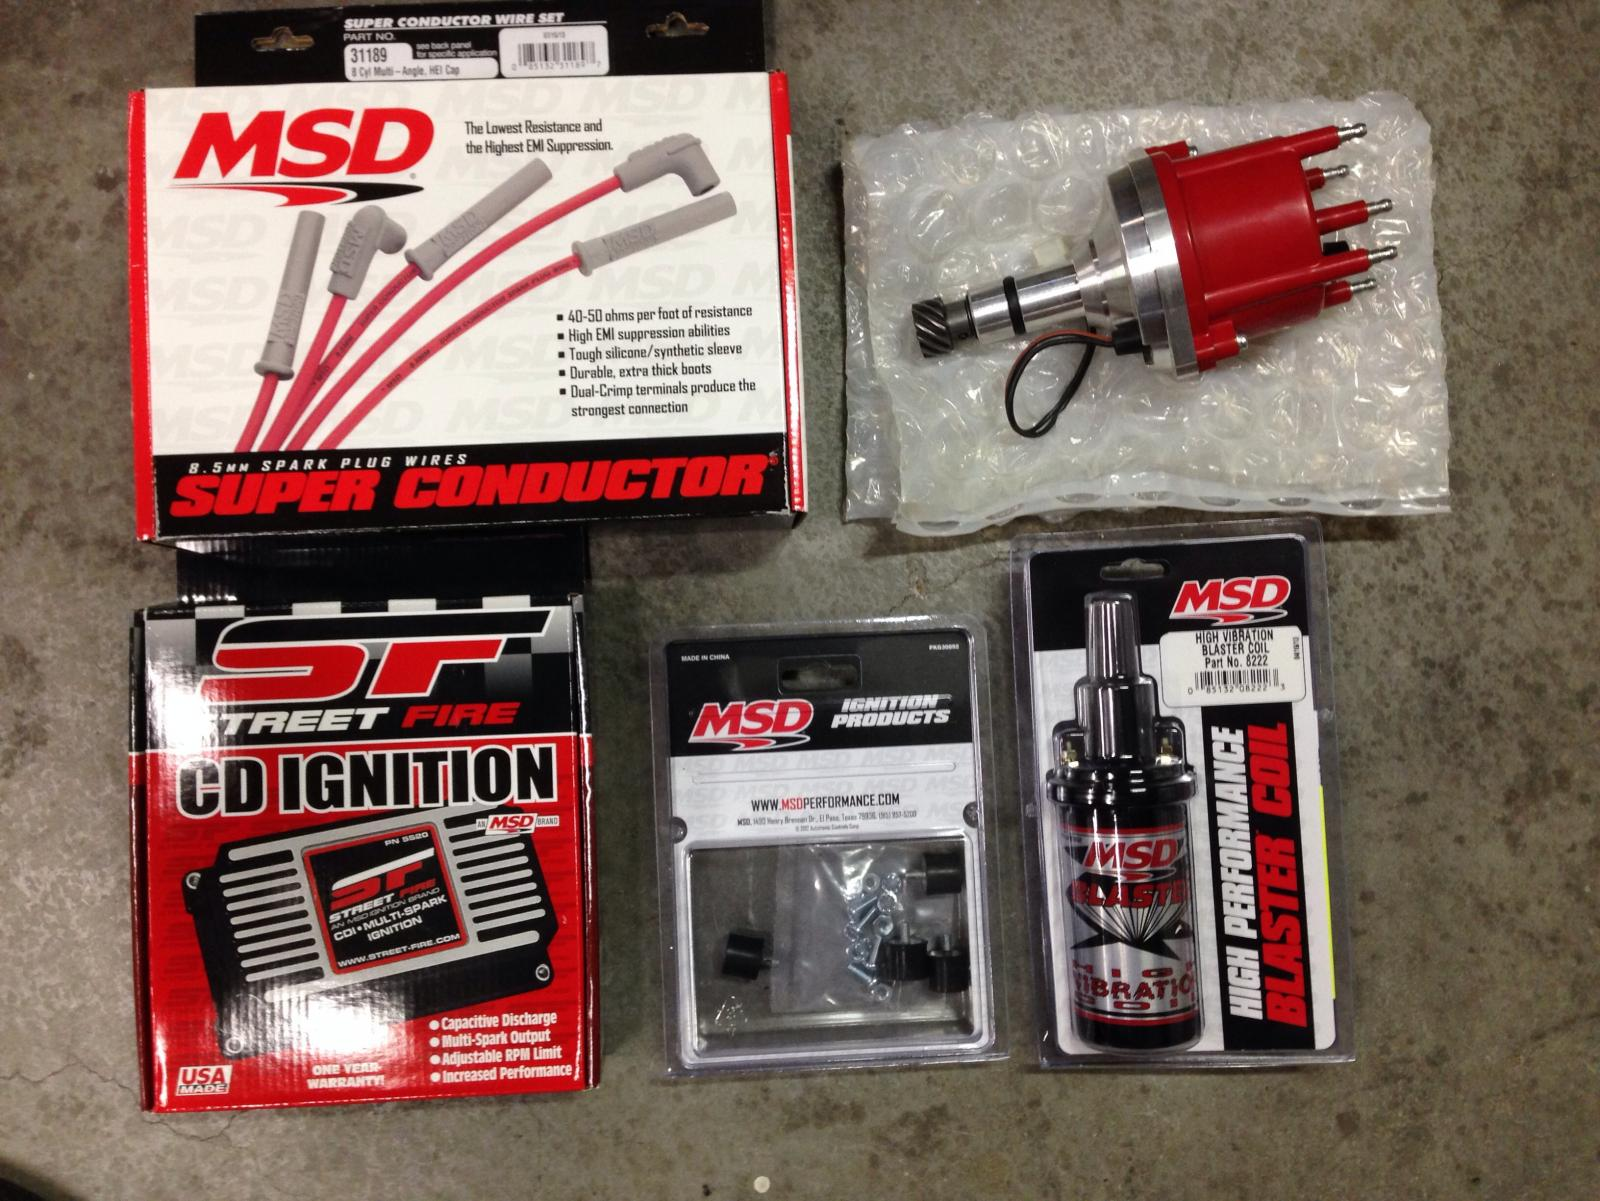 Complete Msd Ignition Install - BMW 2002 and other '02 - BMW